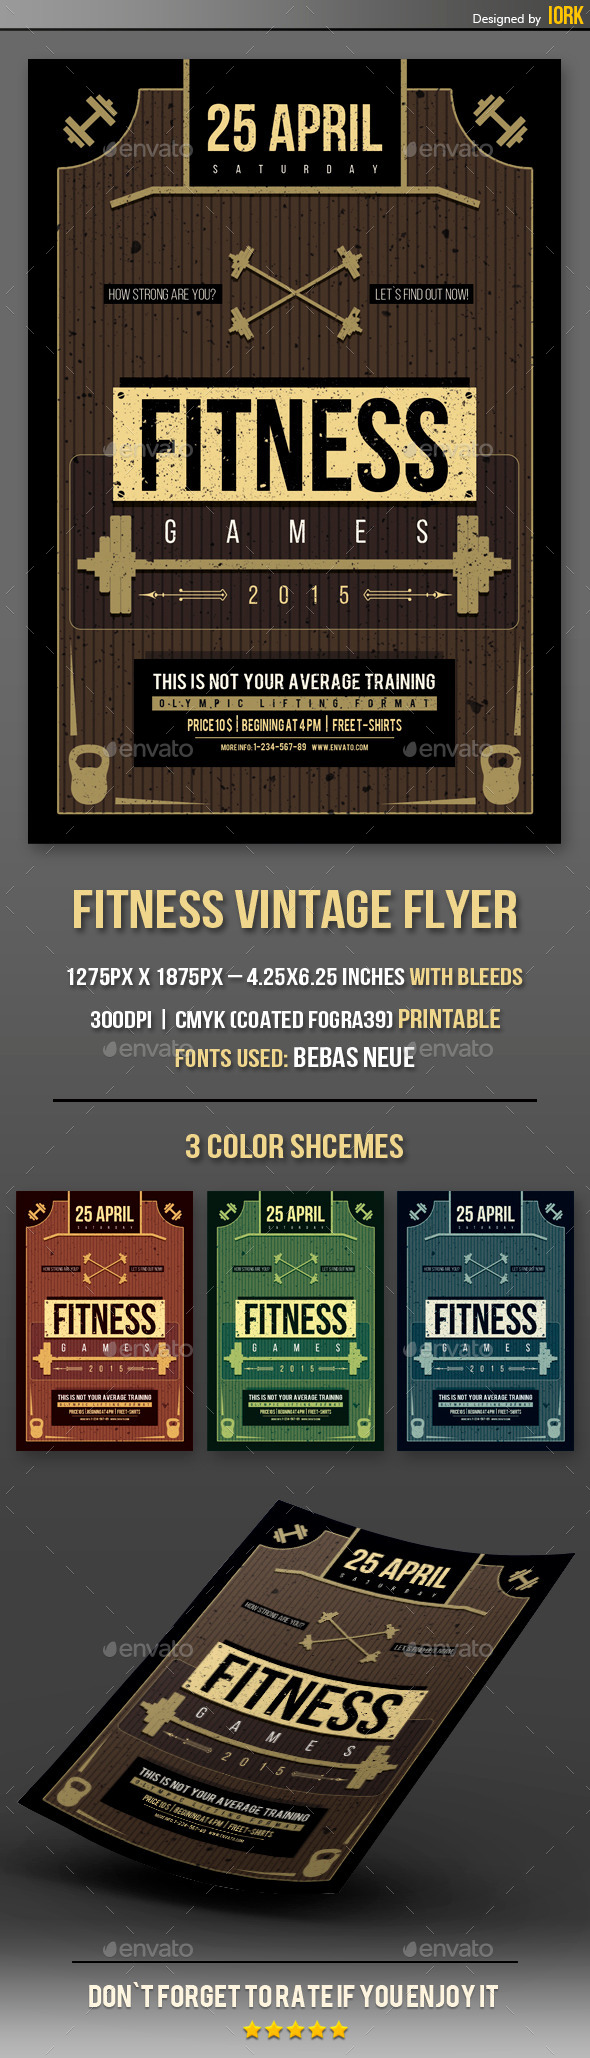 Fitness Vintage Flyer - Flyers Print Templates